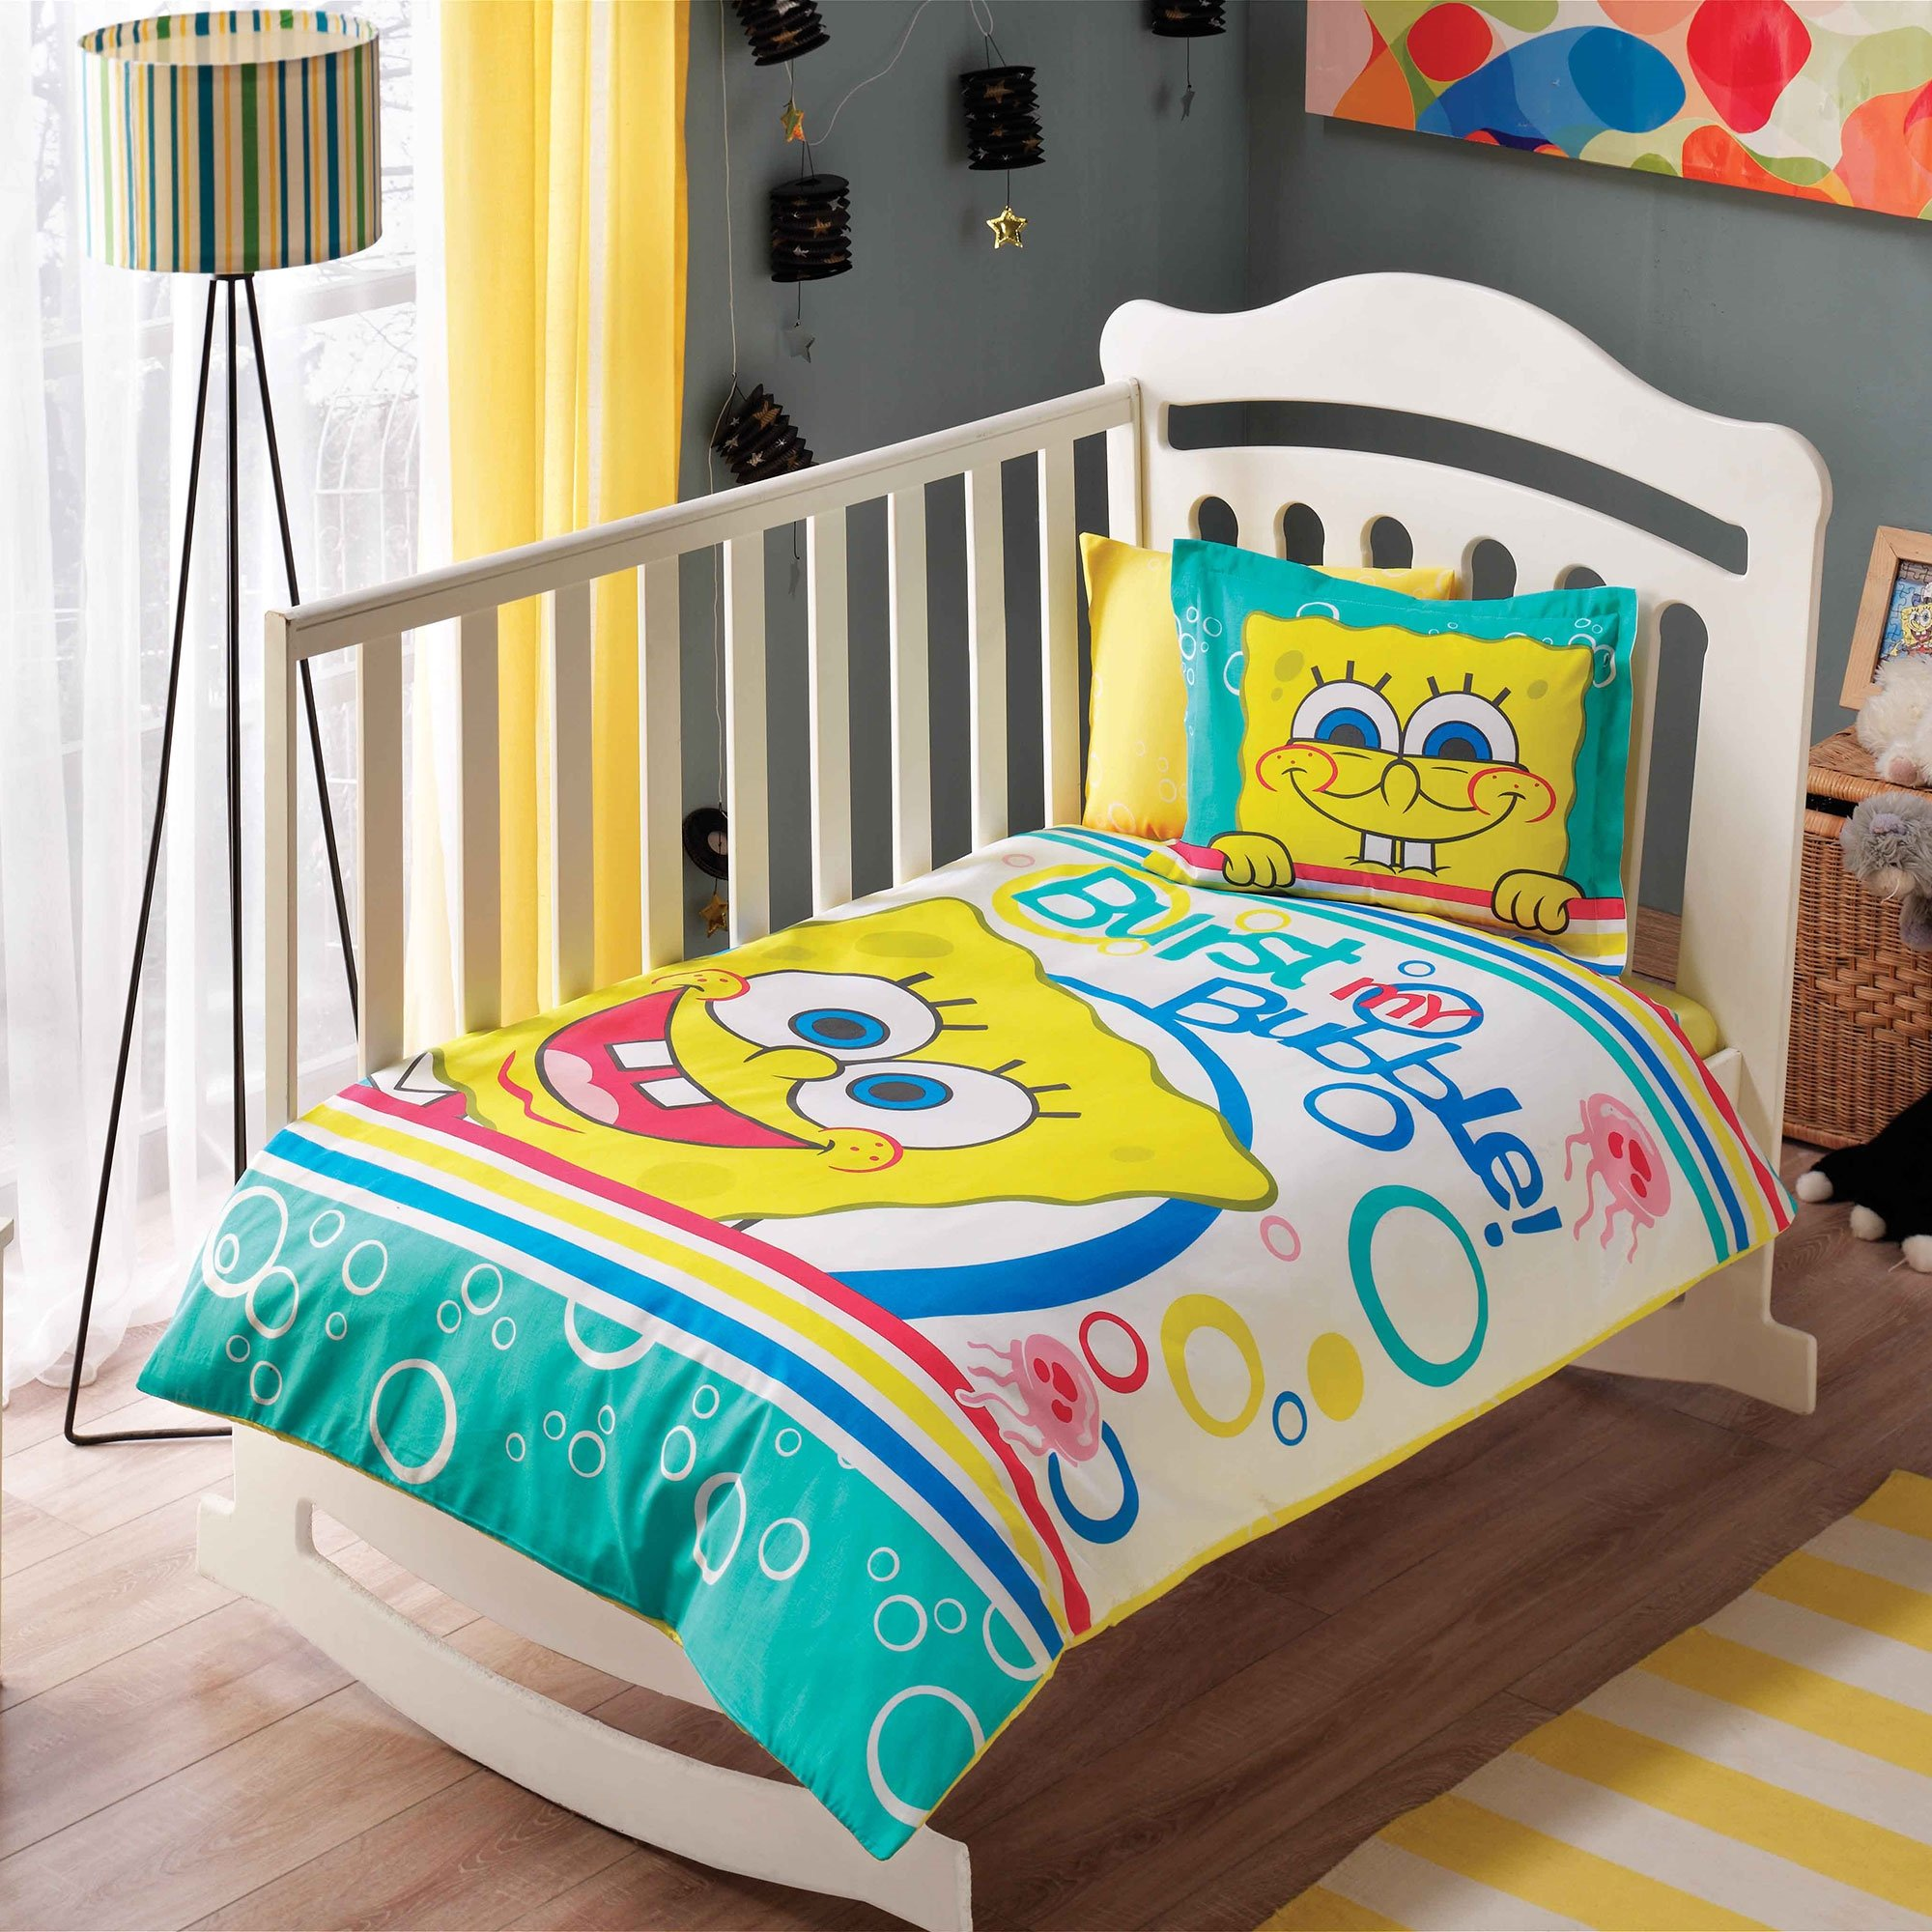 100% Organic Cotton Soft and Healthy Baby Crib Bed Duvet Cover Set 4 Pieces, Sponge Bob Bubble Baby Bedding Set